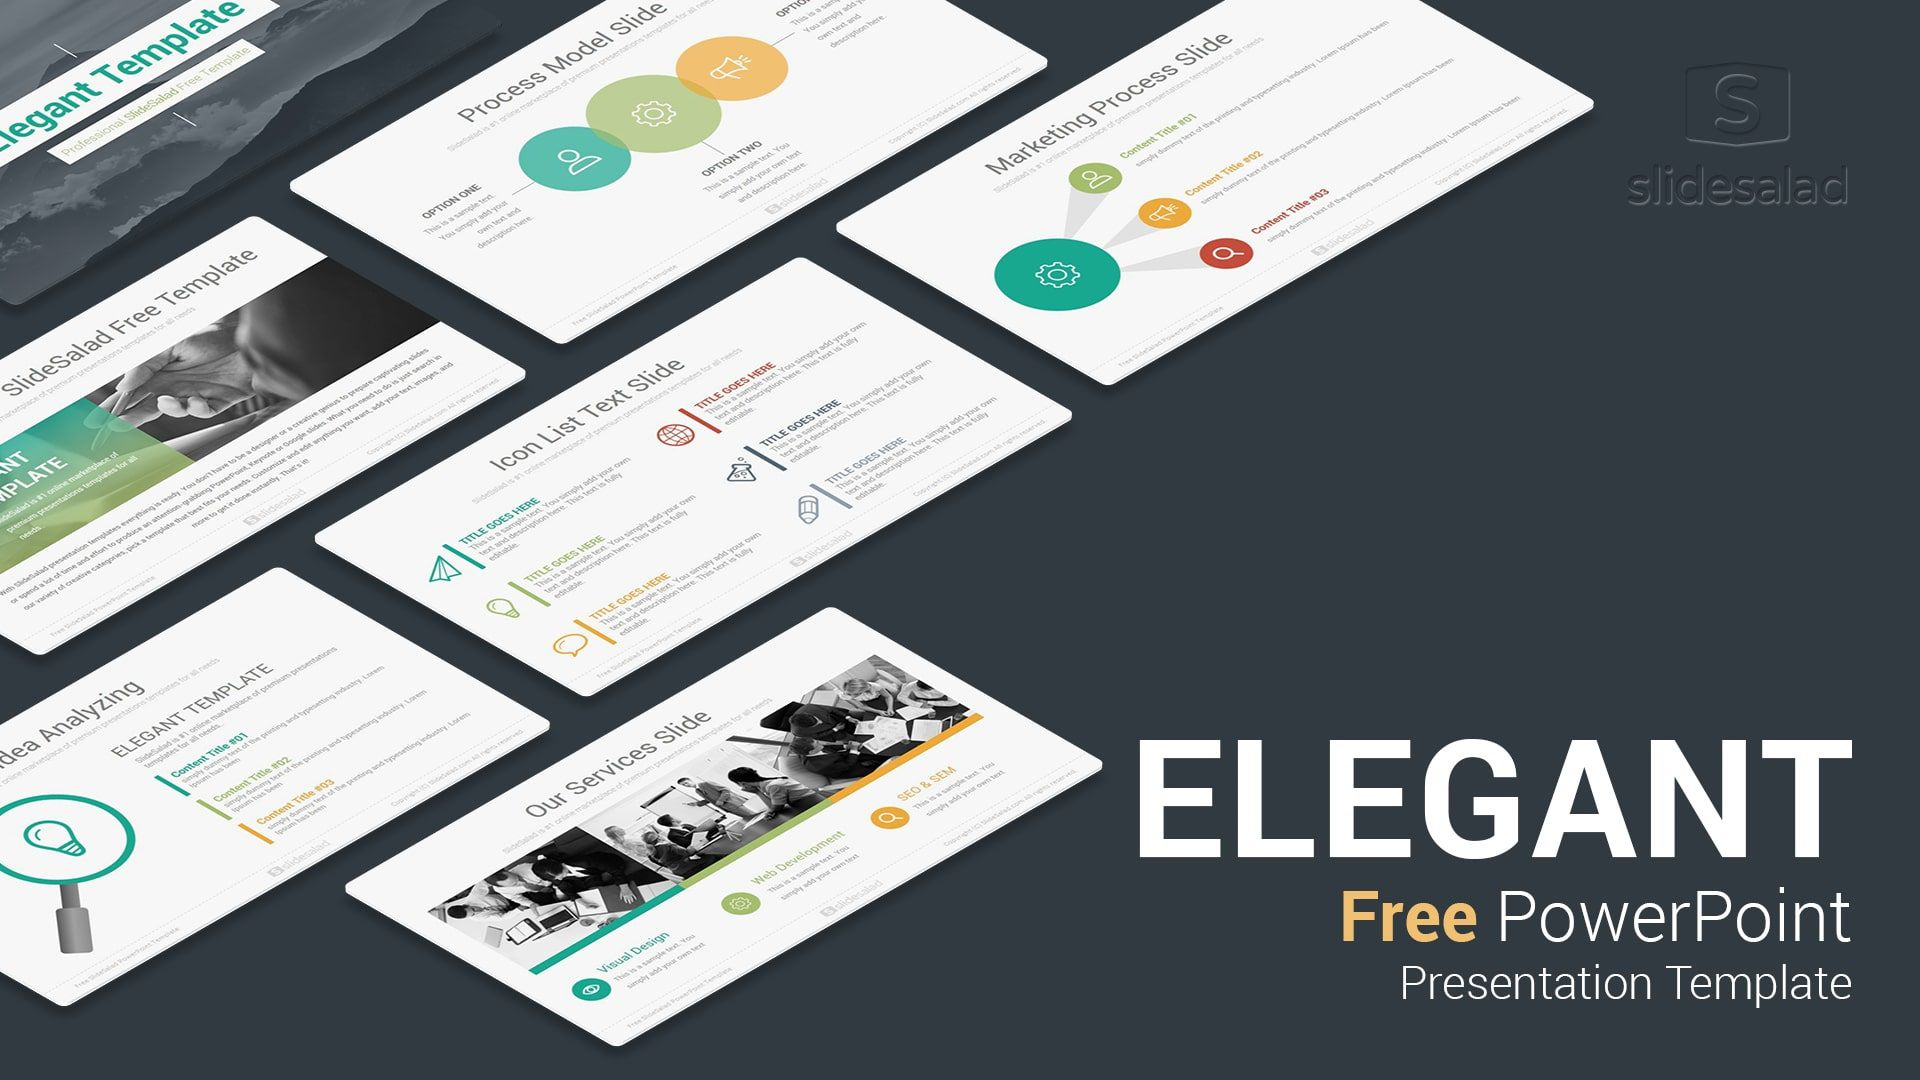 005 Outstanding Product Presentation Ppt Template Free Download Inspiration Full